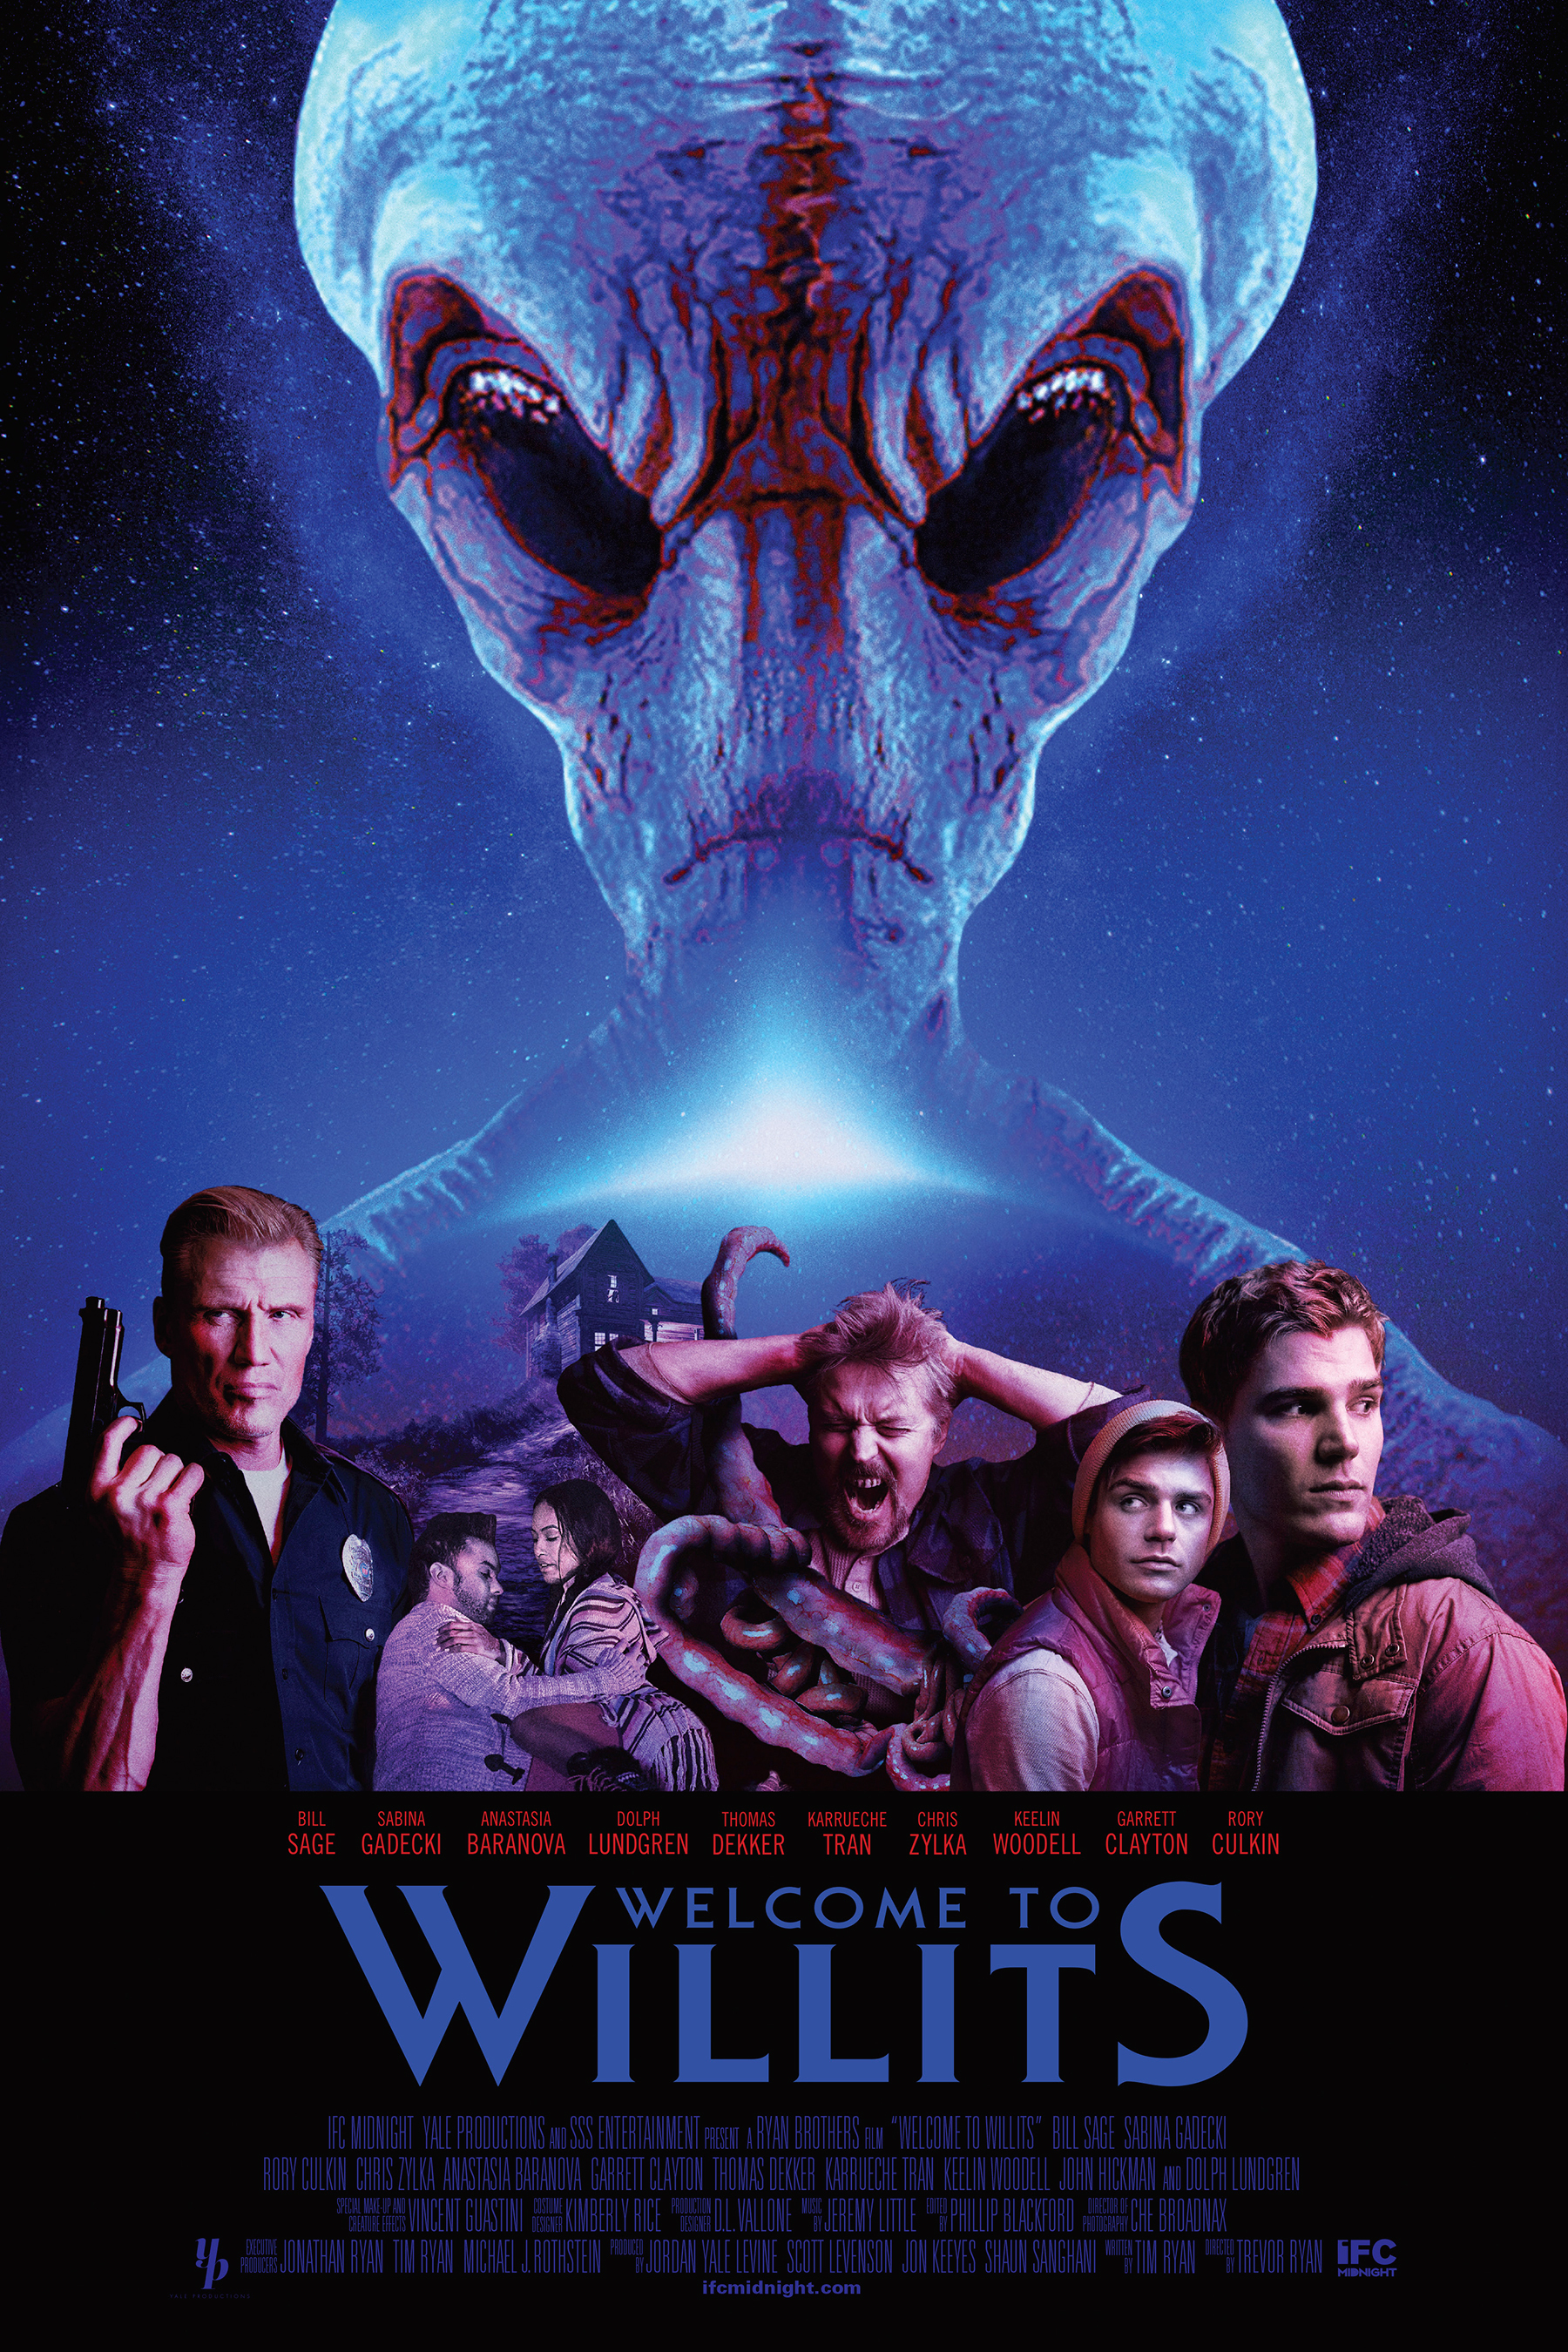 trailer-for-an-alien-abduction-horror-thriller-called-welcome-to-willits1